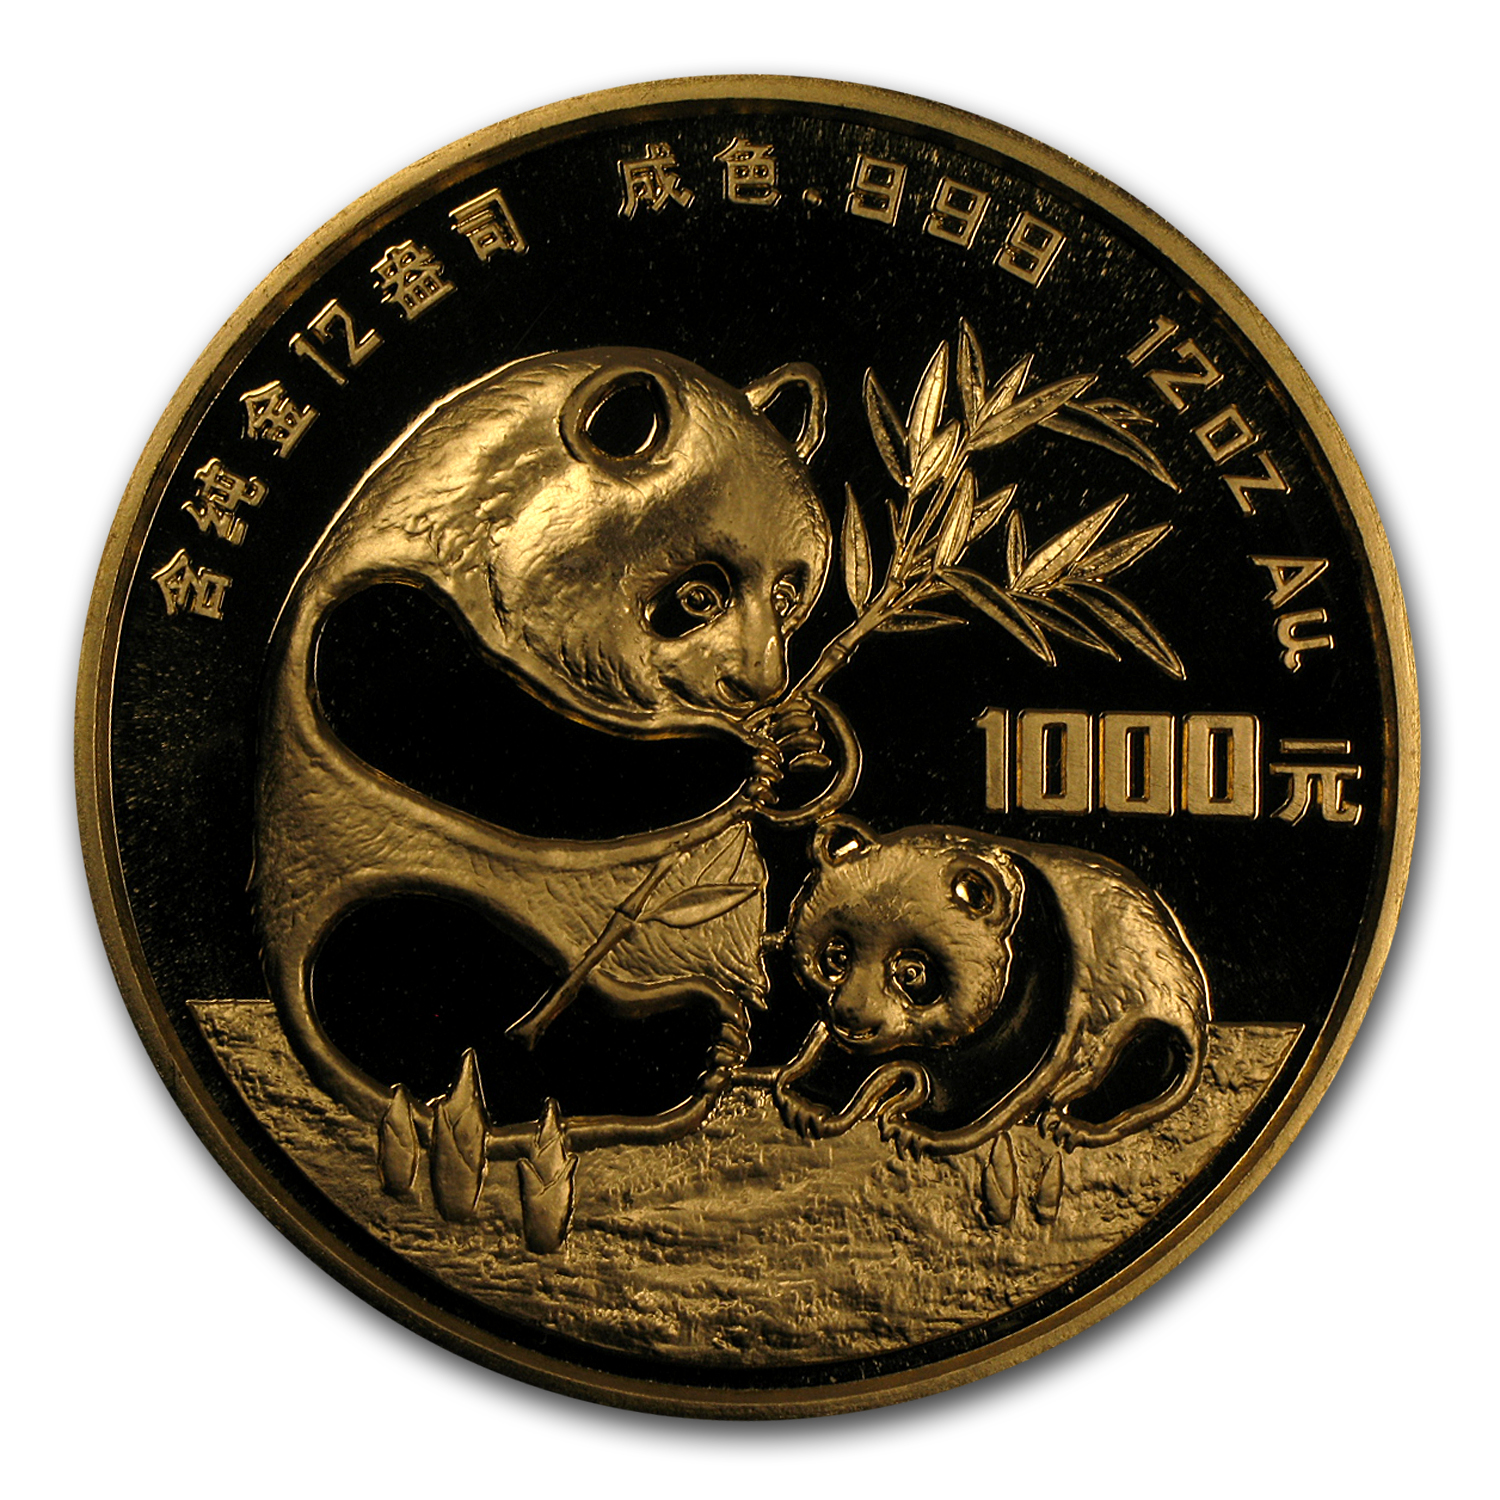 1986 (Giant 12 oz Proof) Gold Chinese Panda (W/Box & COA)